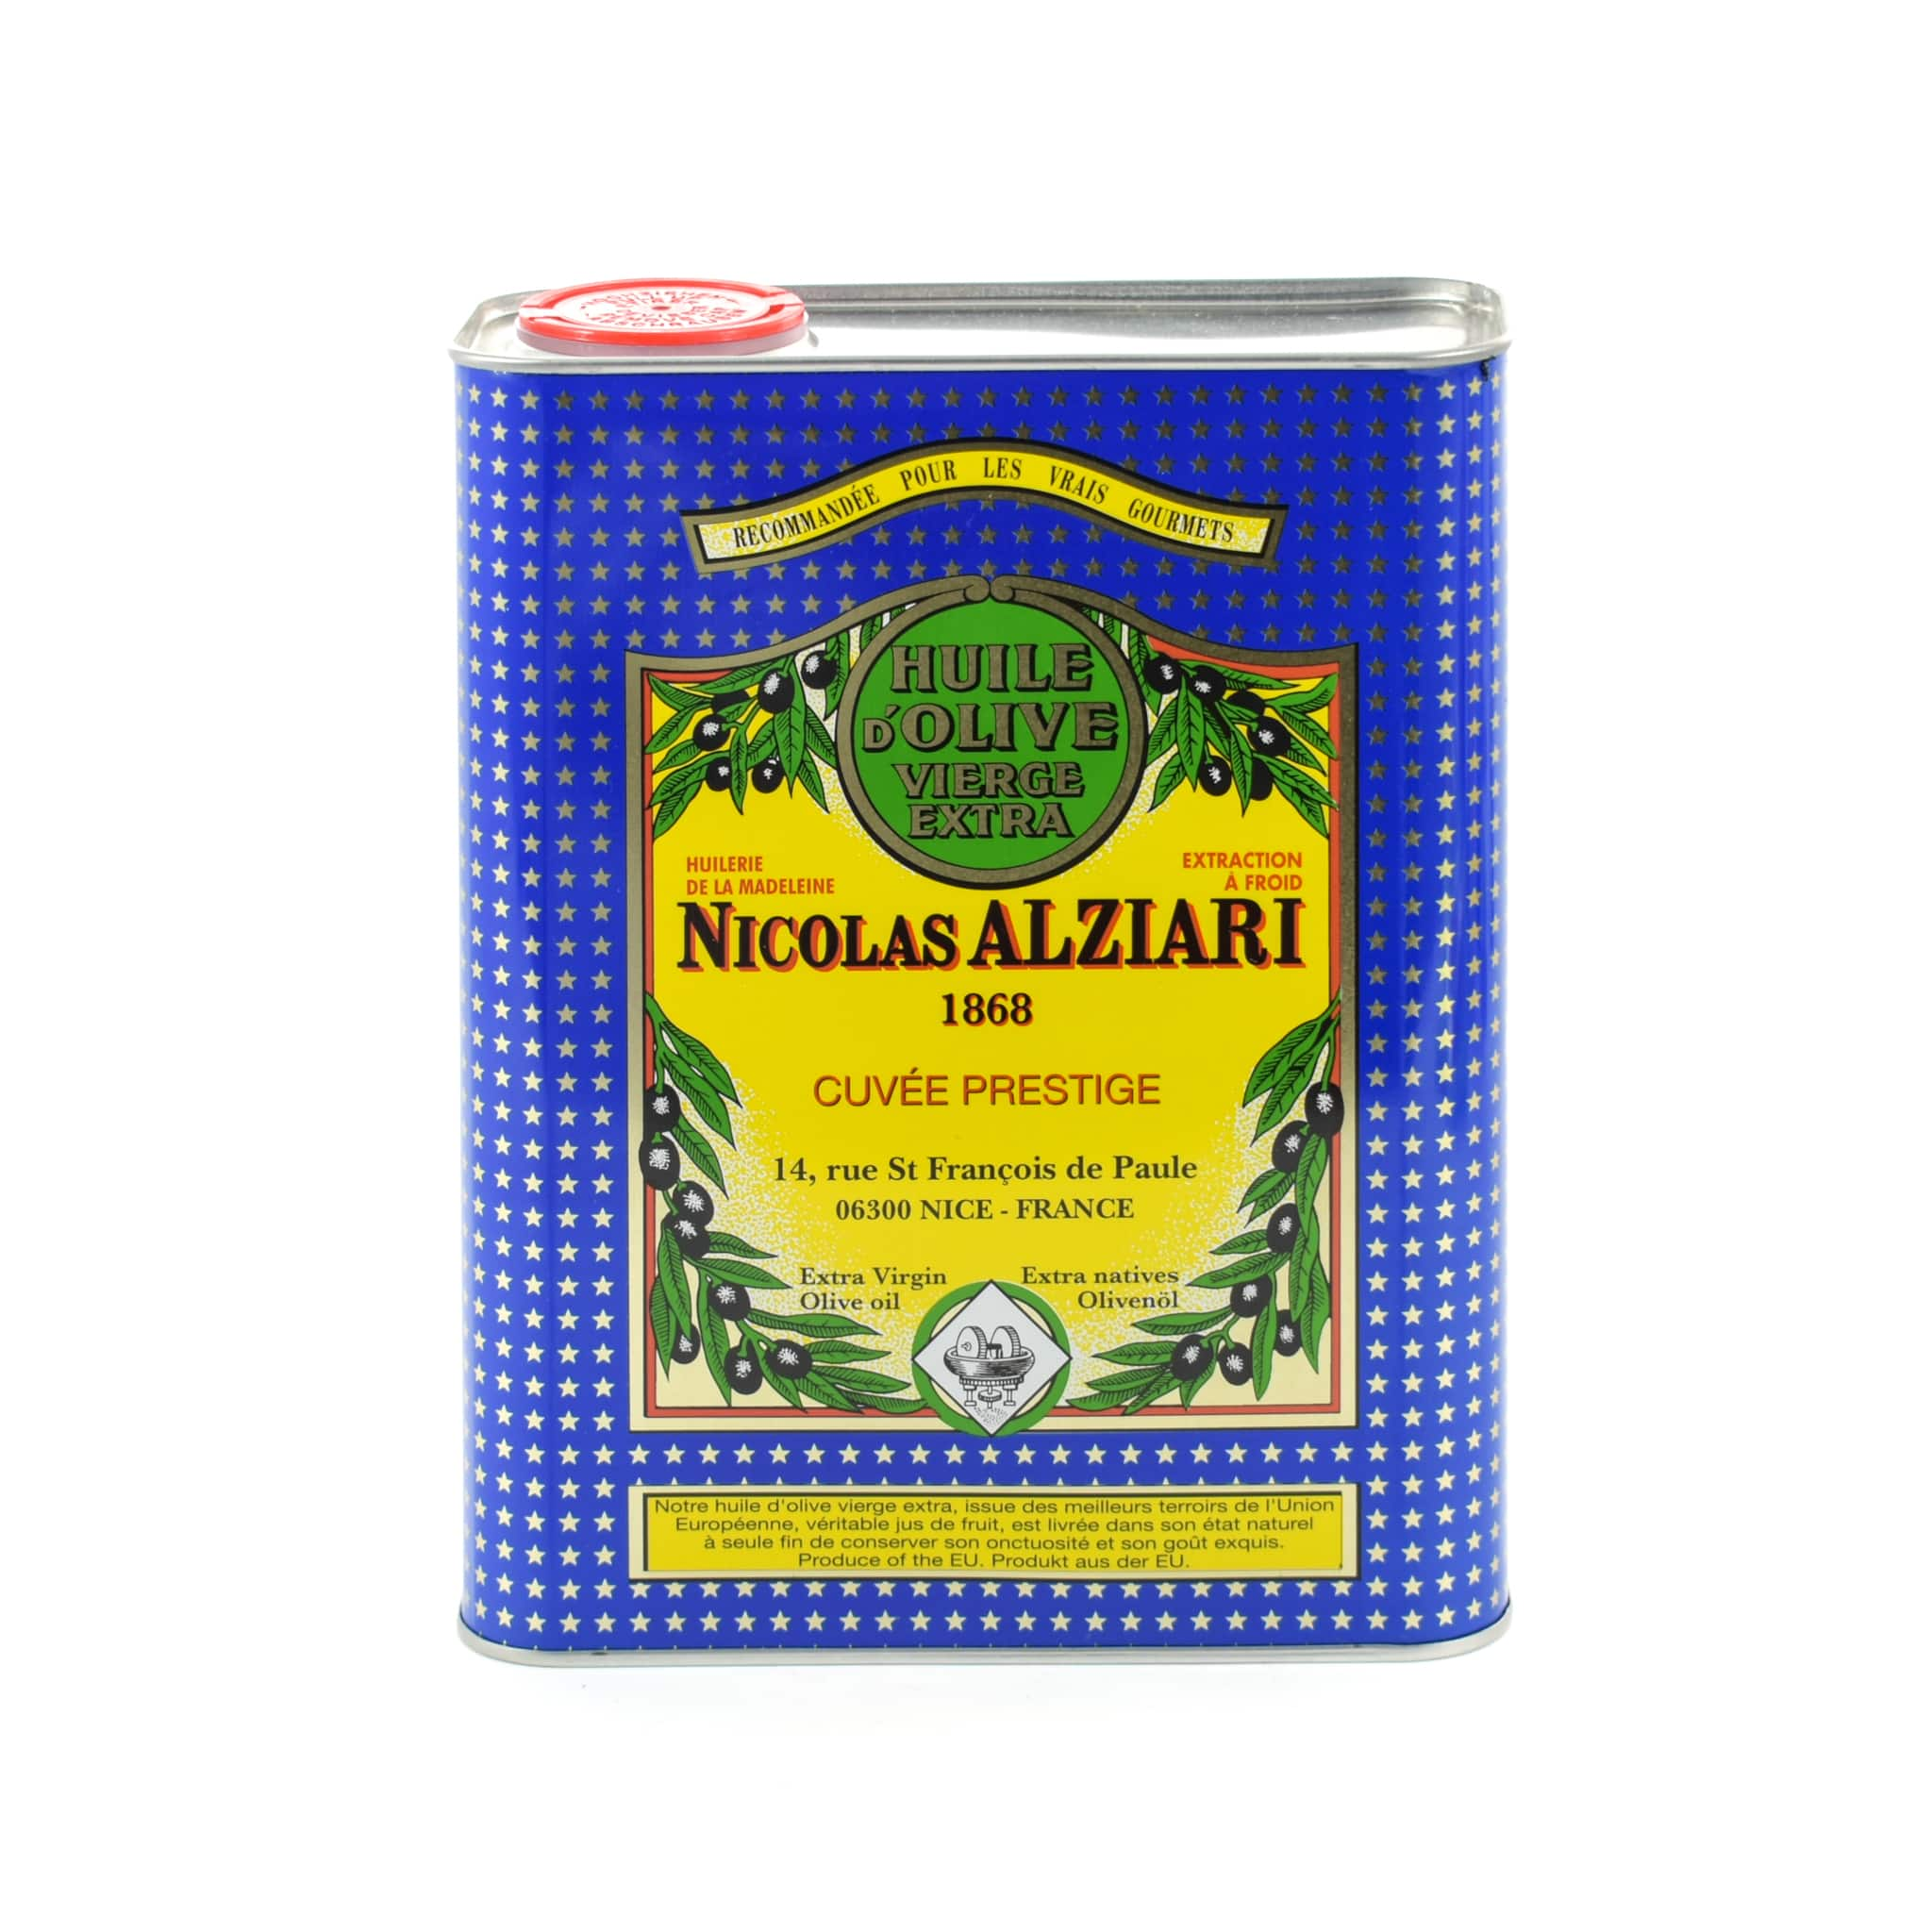 Nicolas Alziari Fruity Soft Provence Olive Oil Oils and Vinegars French Food & Recipes